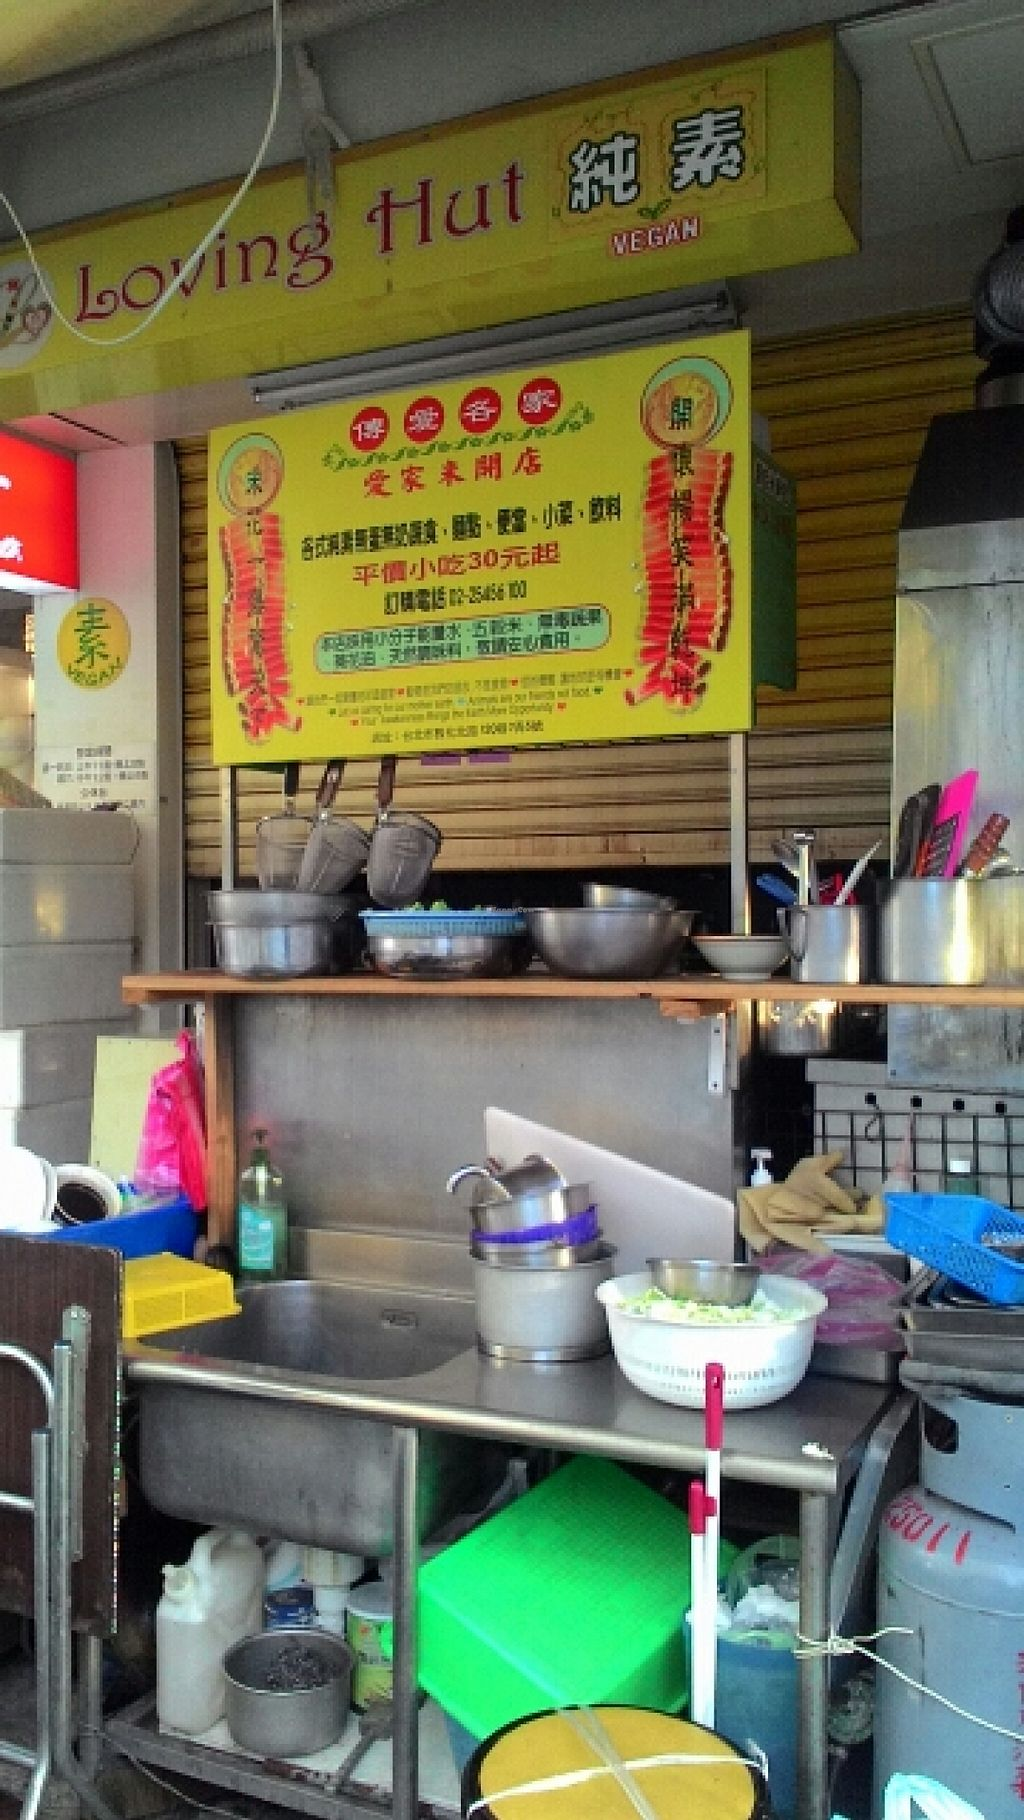 """Photo of Loving Hut - Dunhua North Rd  by <a href=""""/members/profile/hardi013"""">hardi013</a> <br/>they close between meal times <br/> October 13, 2015  - <a href='/contact/abuse/image/48040/121183'>Report</a>"""